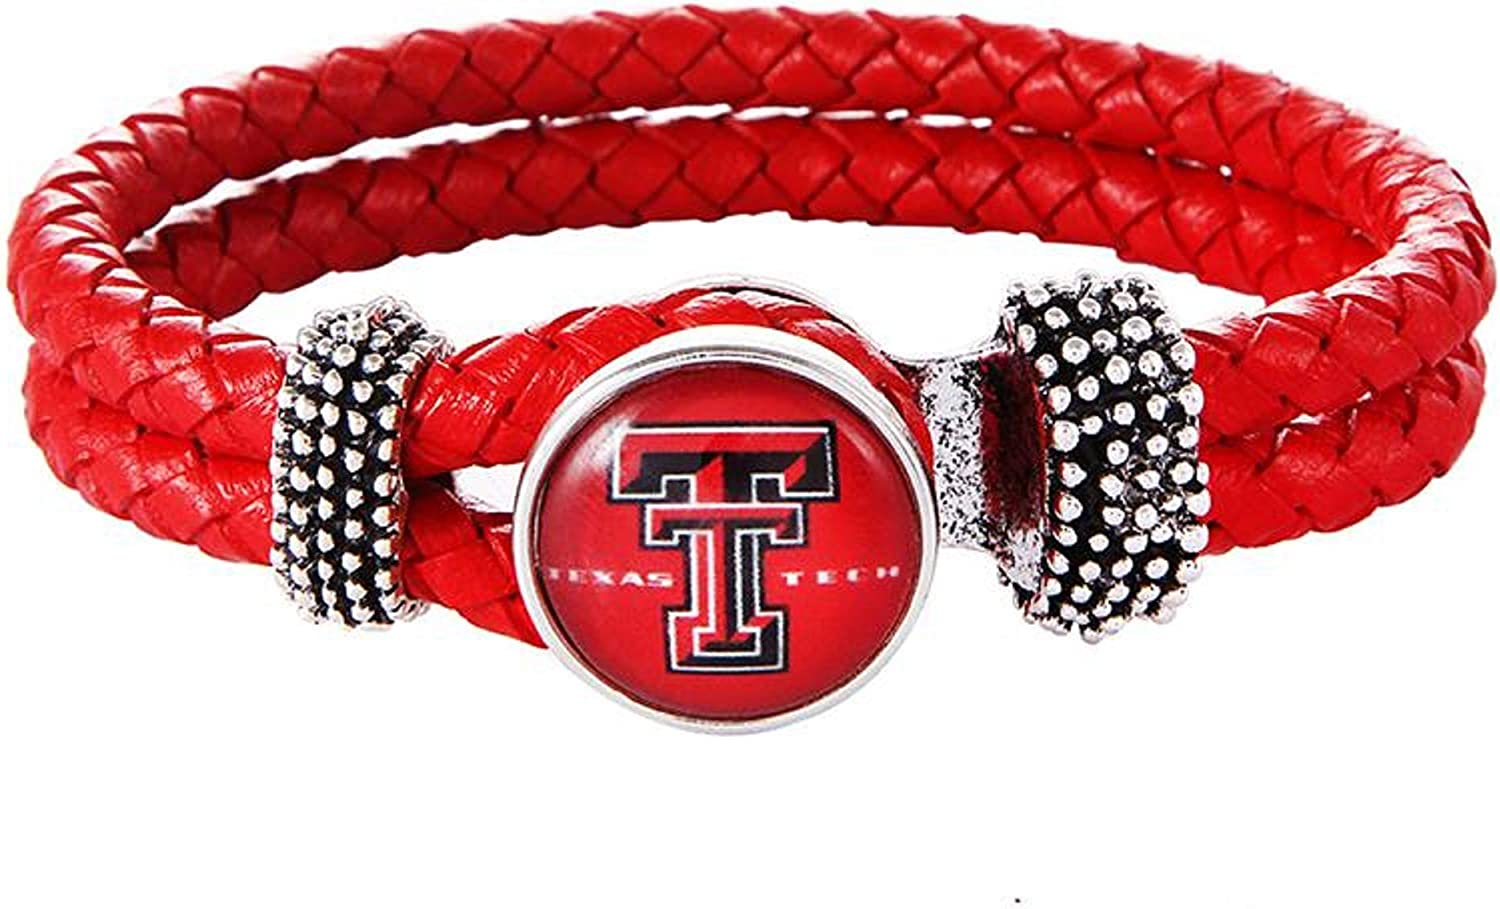 Swamp Fox Texas Tech Red Raiders Double Leather Band Bracelet with Charm 7 to 9